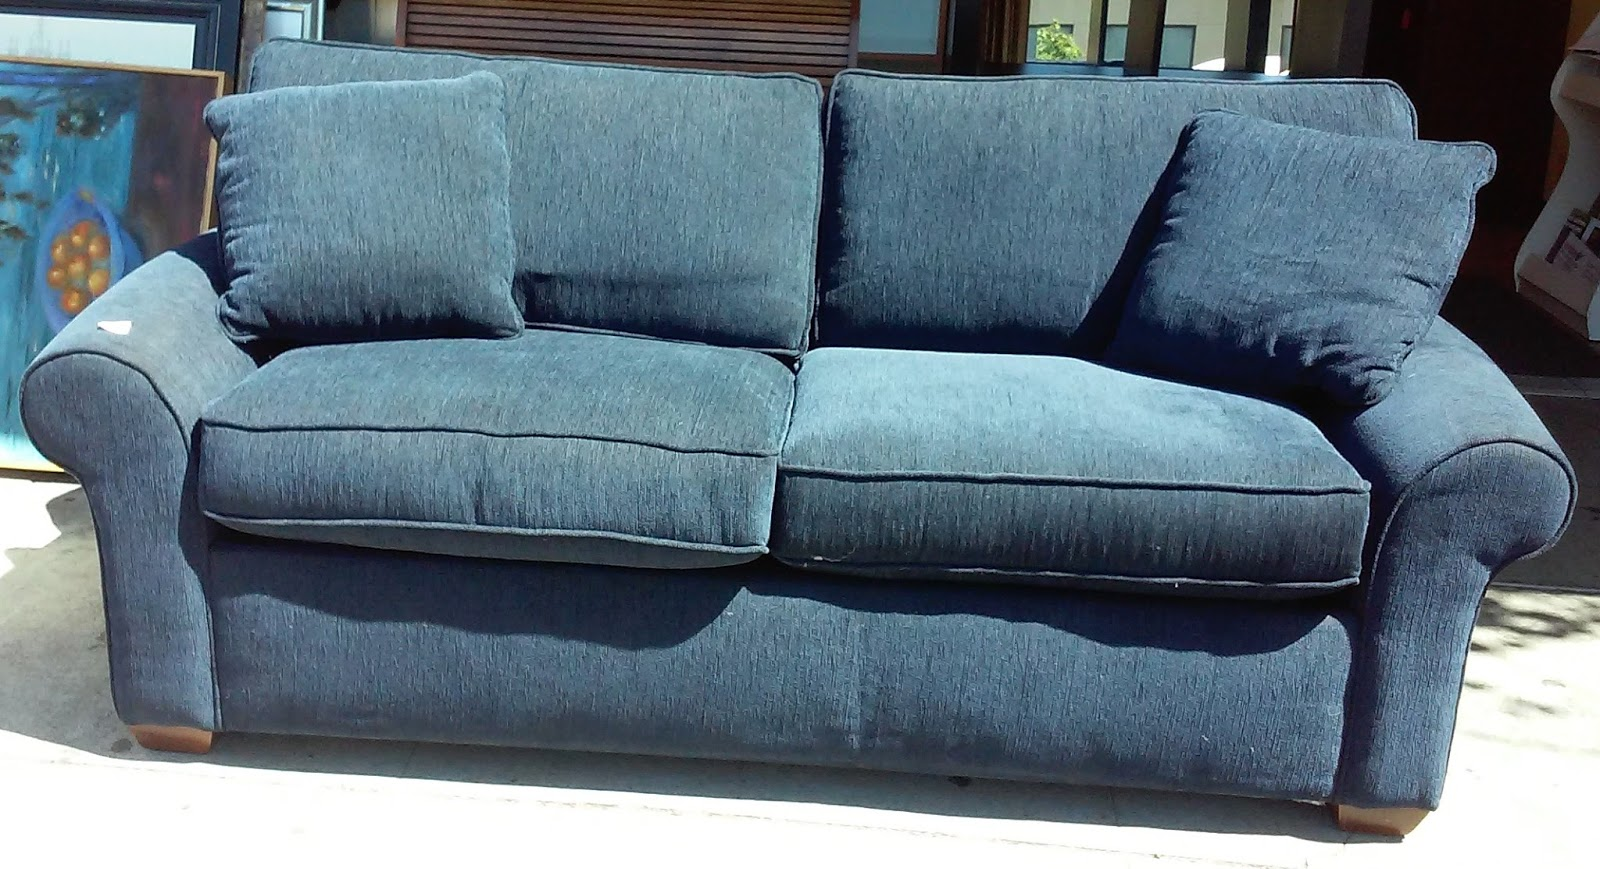 4 foot wide sofa bed overstock slipcovers uhuru furniture and collectibles sold 4950 sealy six a